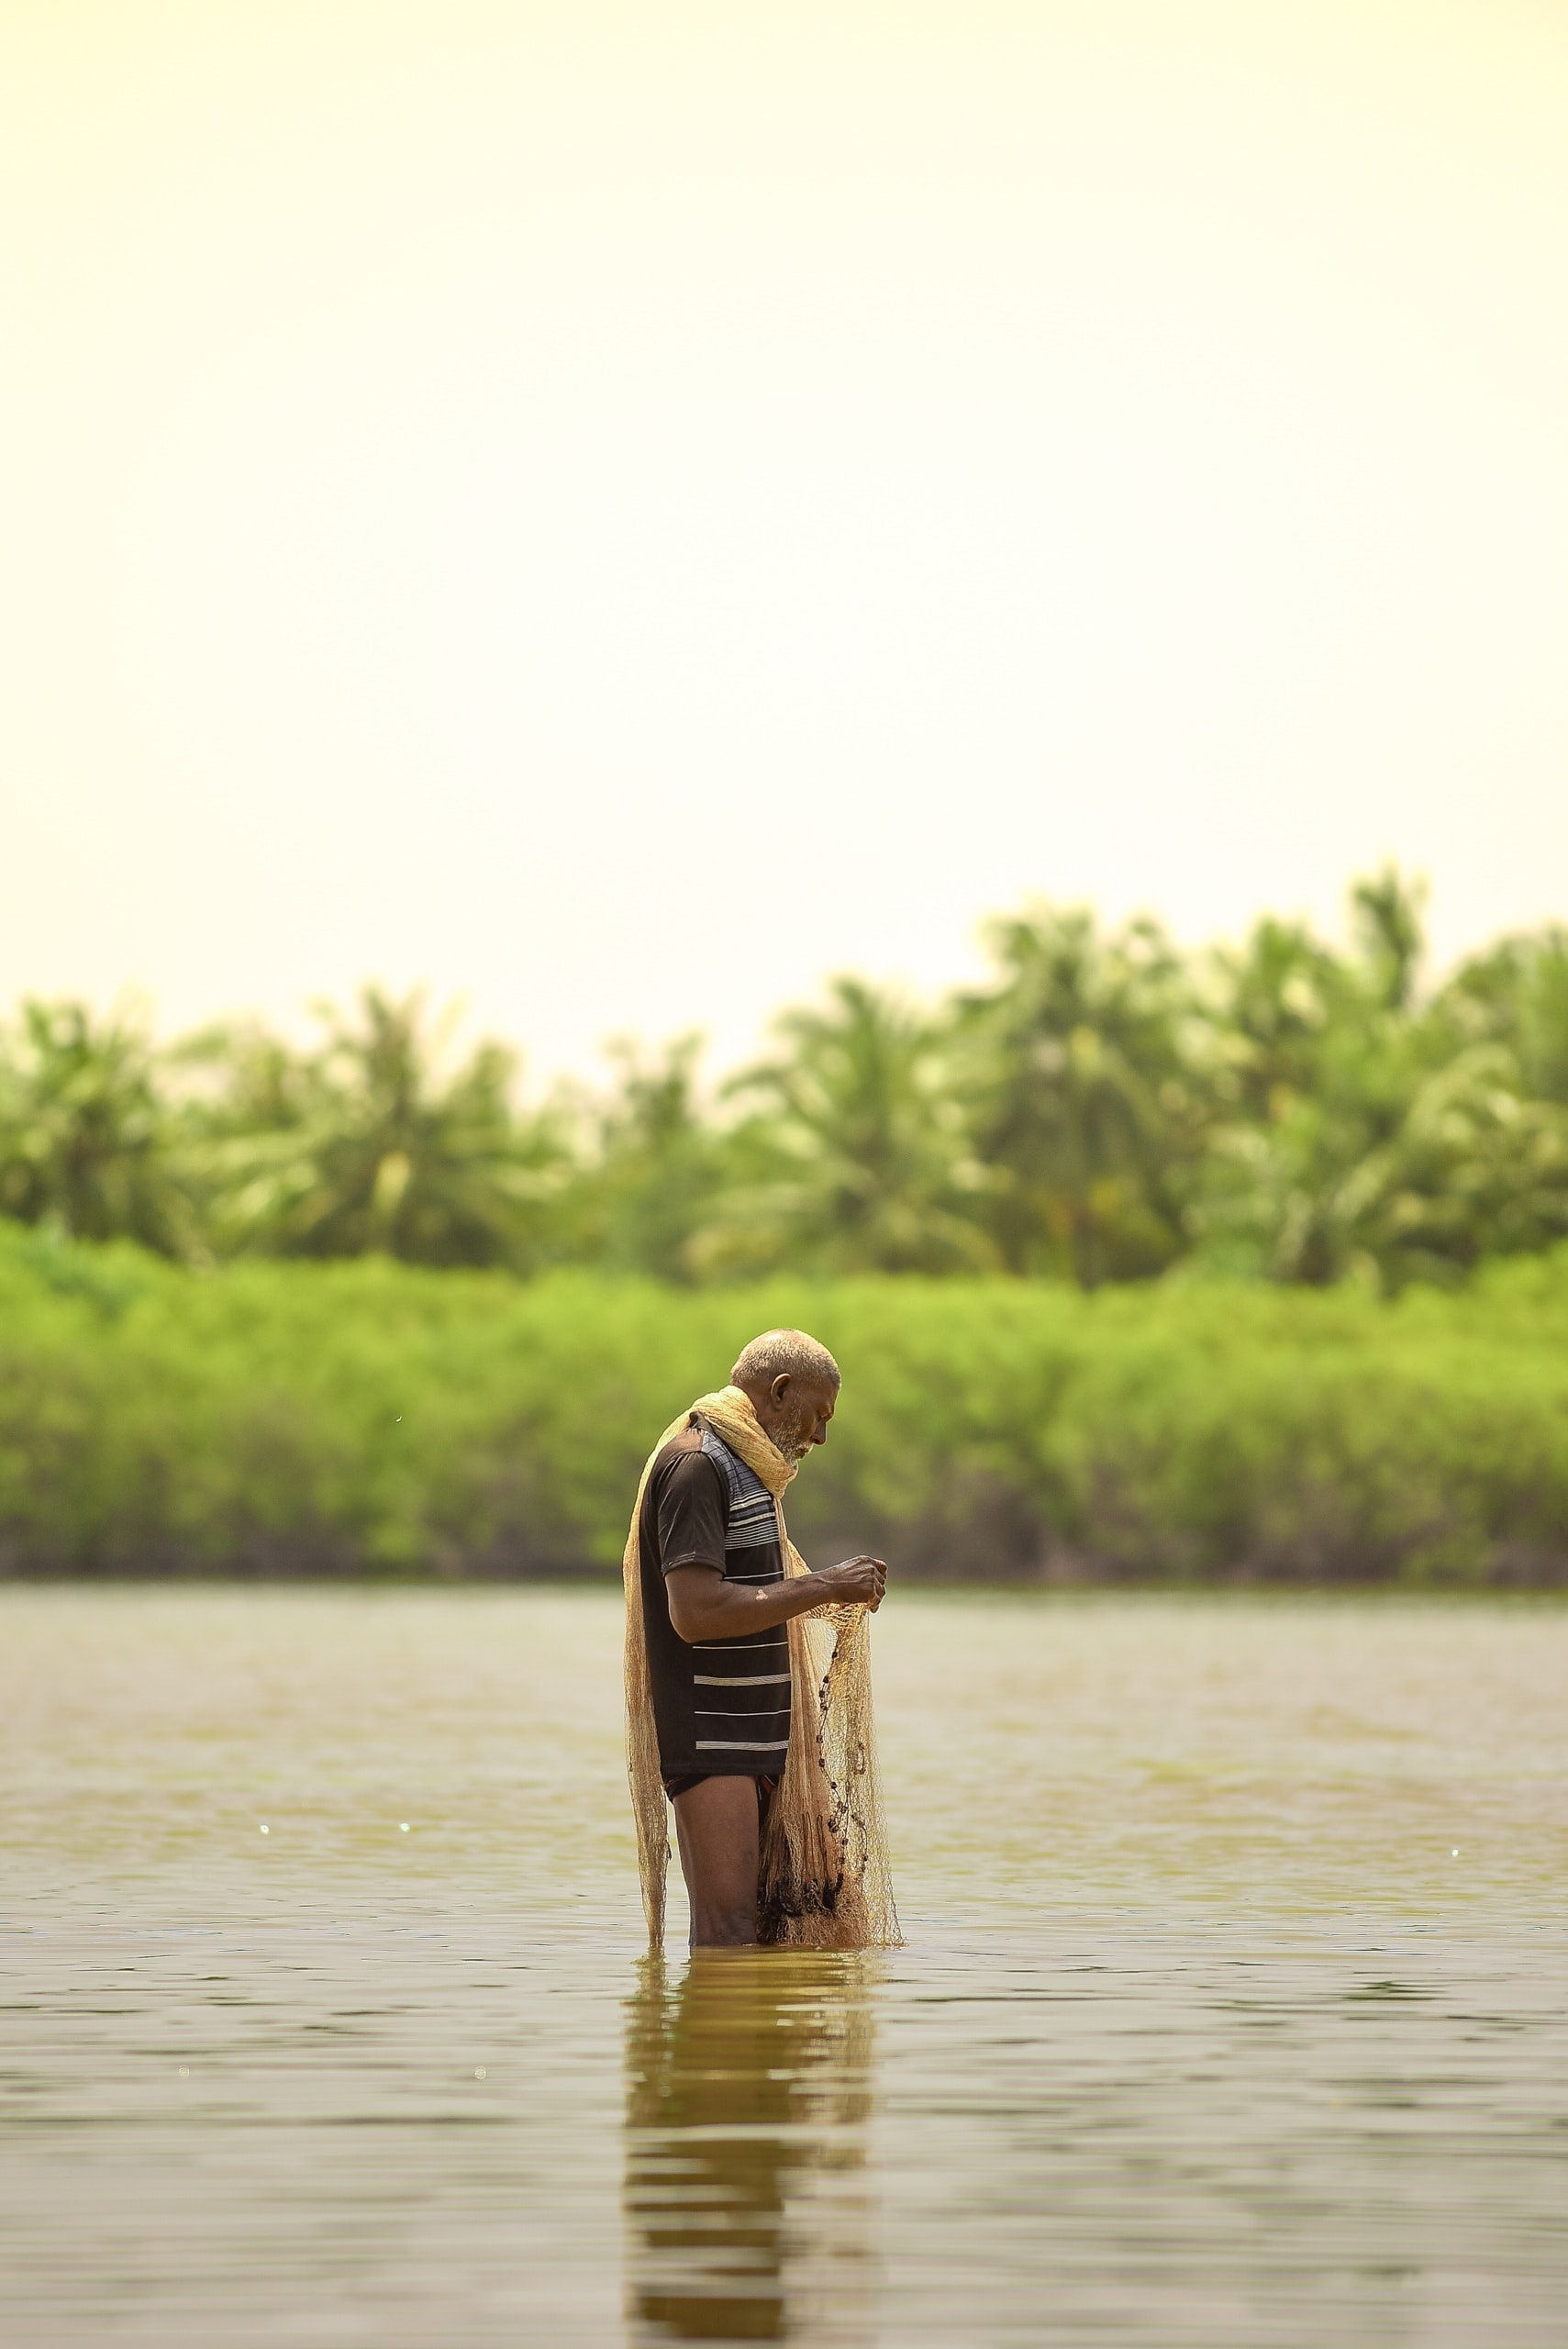 man holding fish net standing on body of water